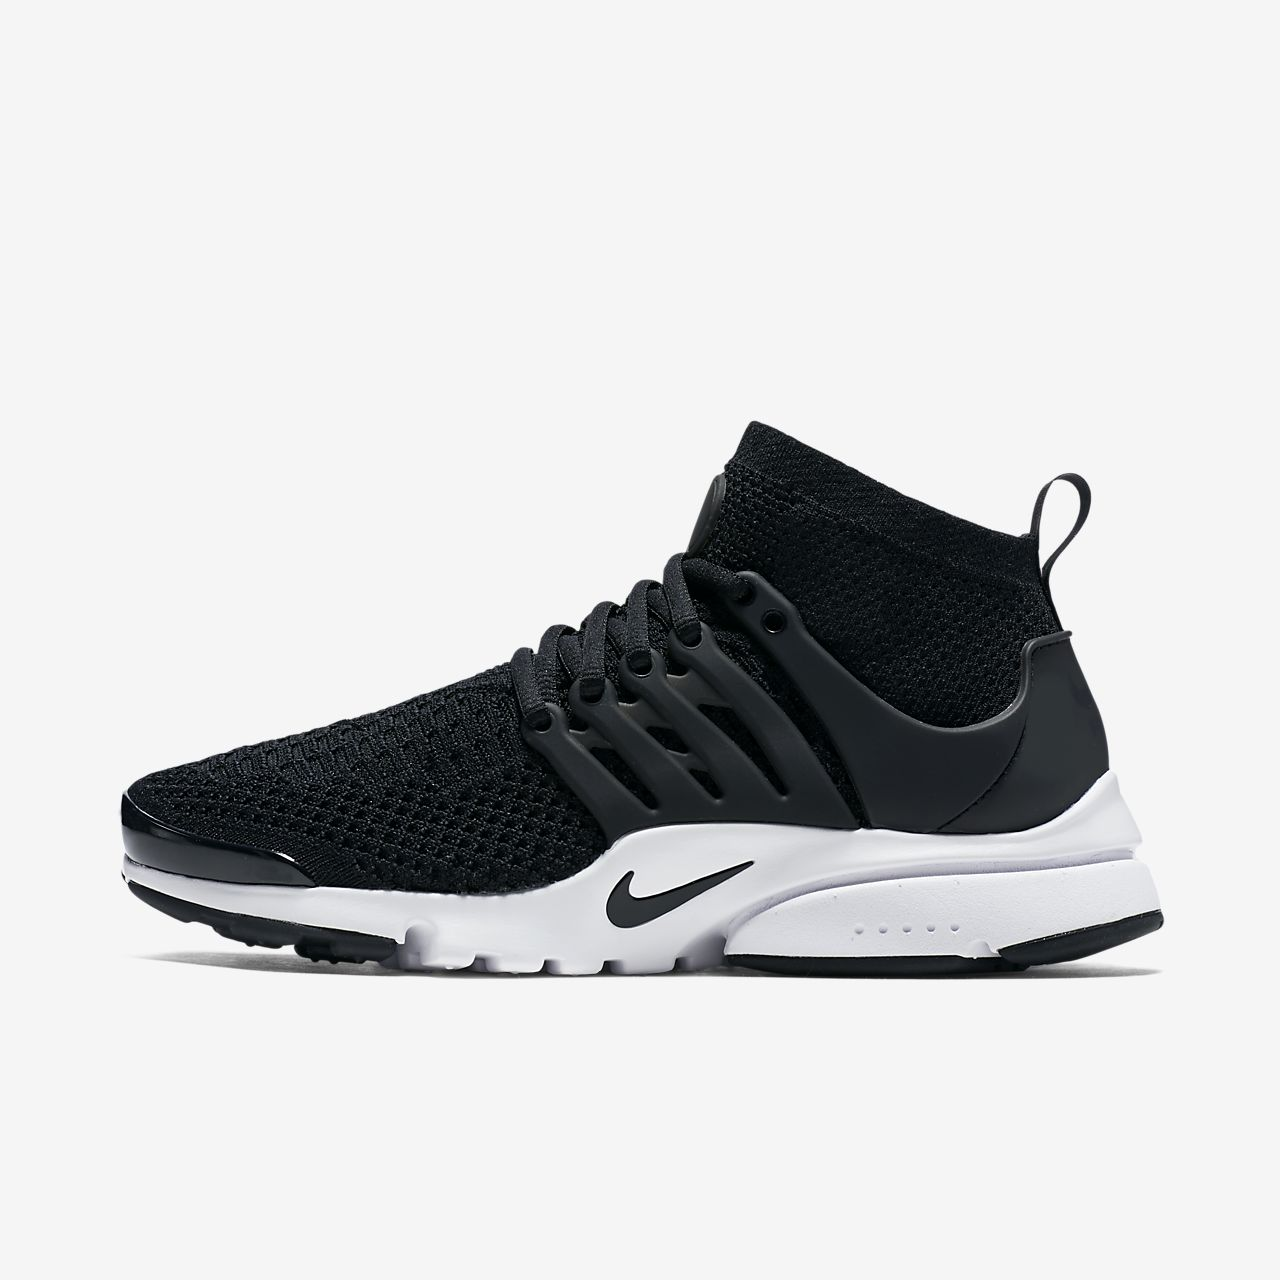 Nike Air Presto Ultra Flyknit Good Quality